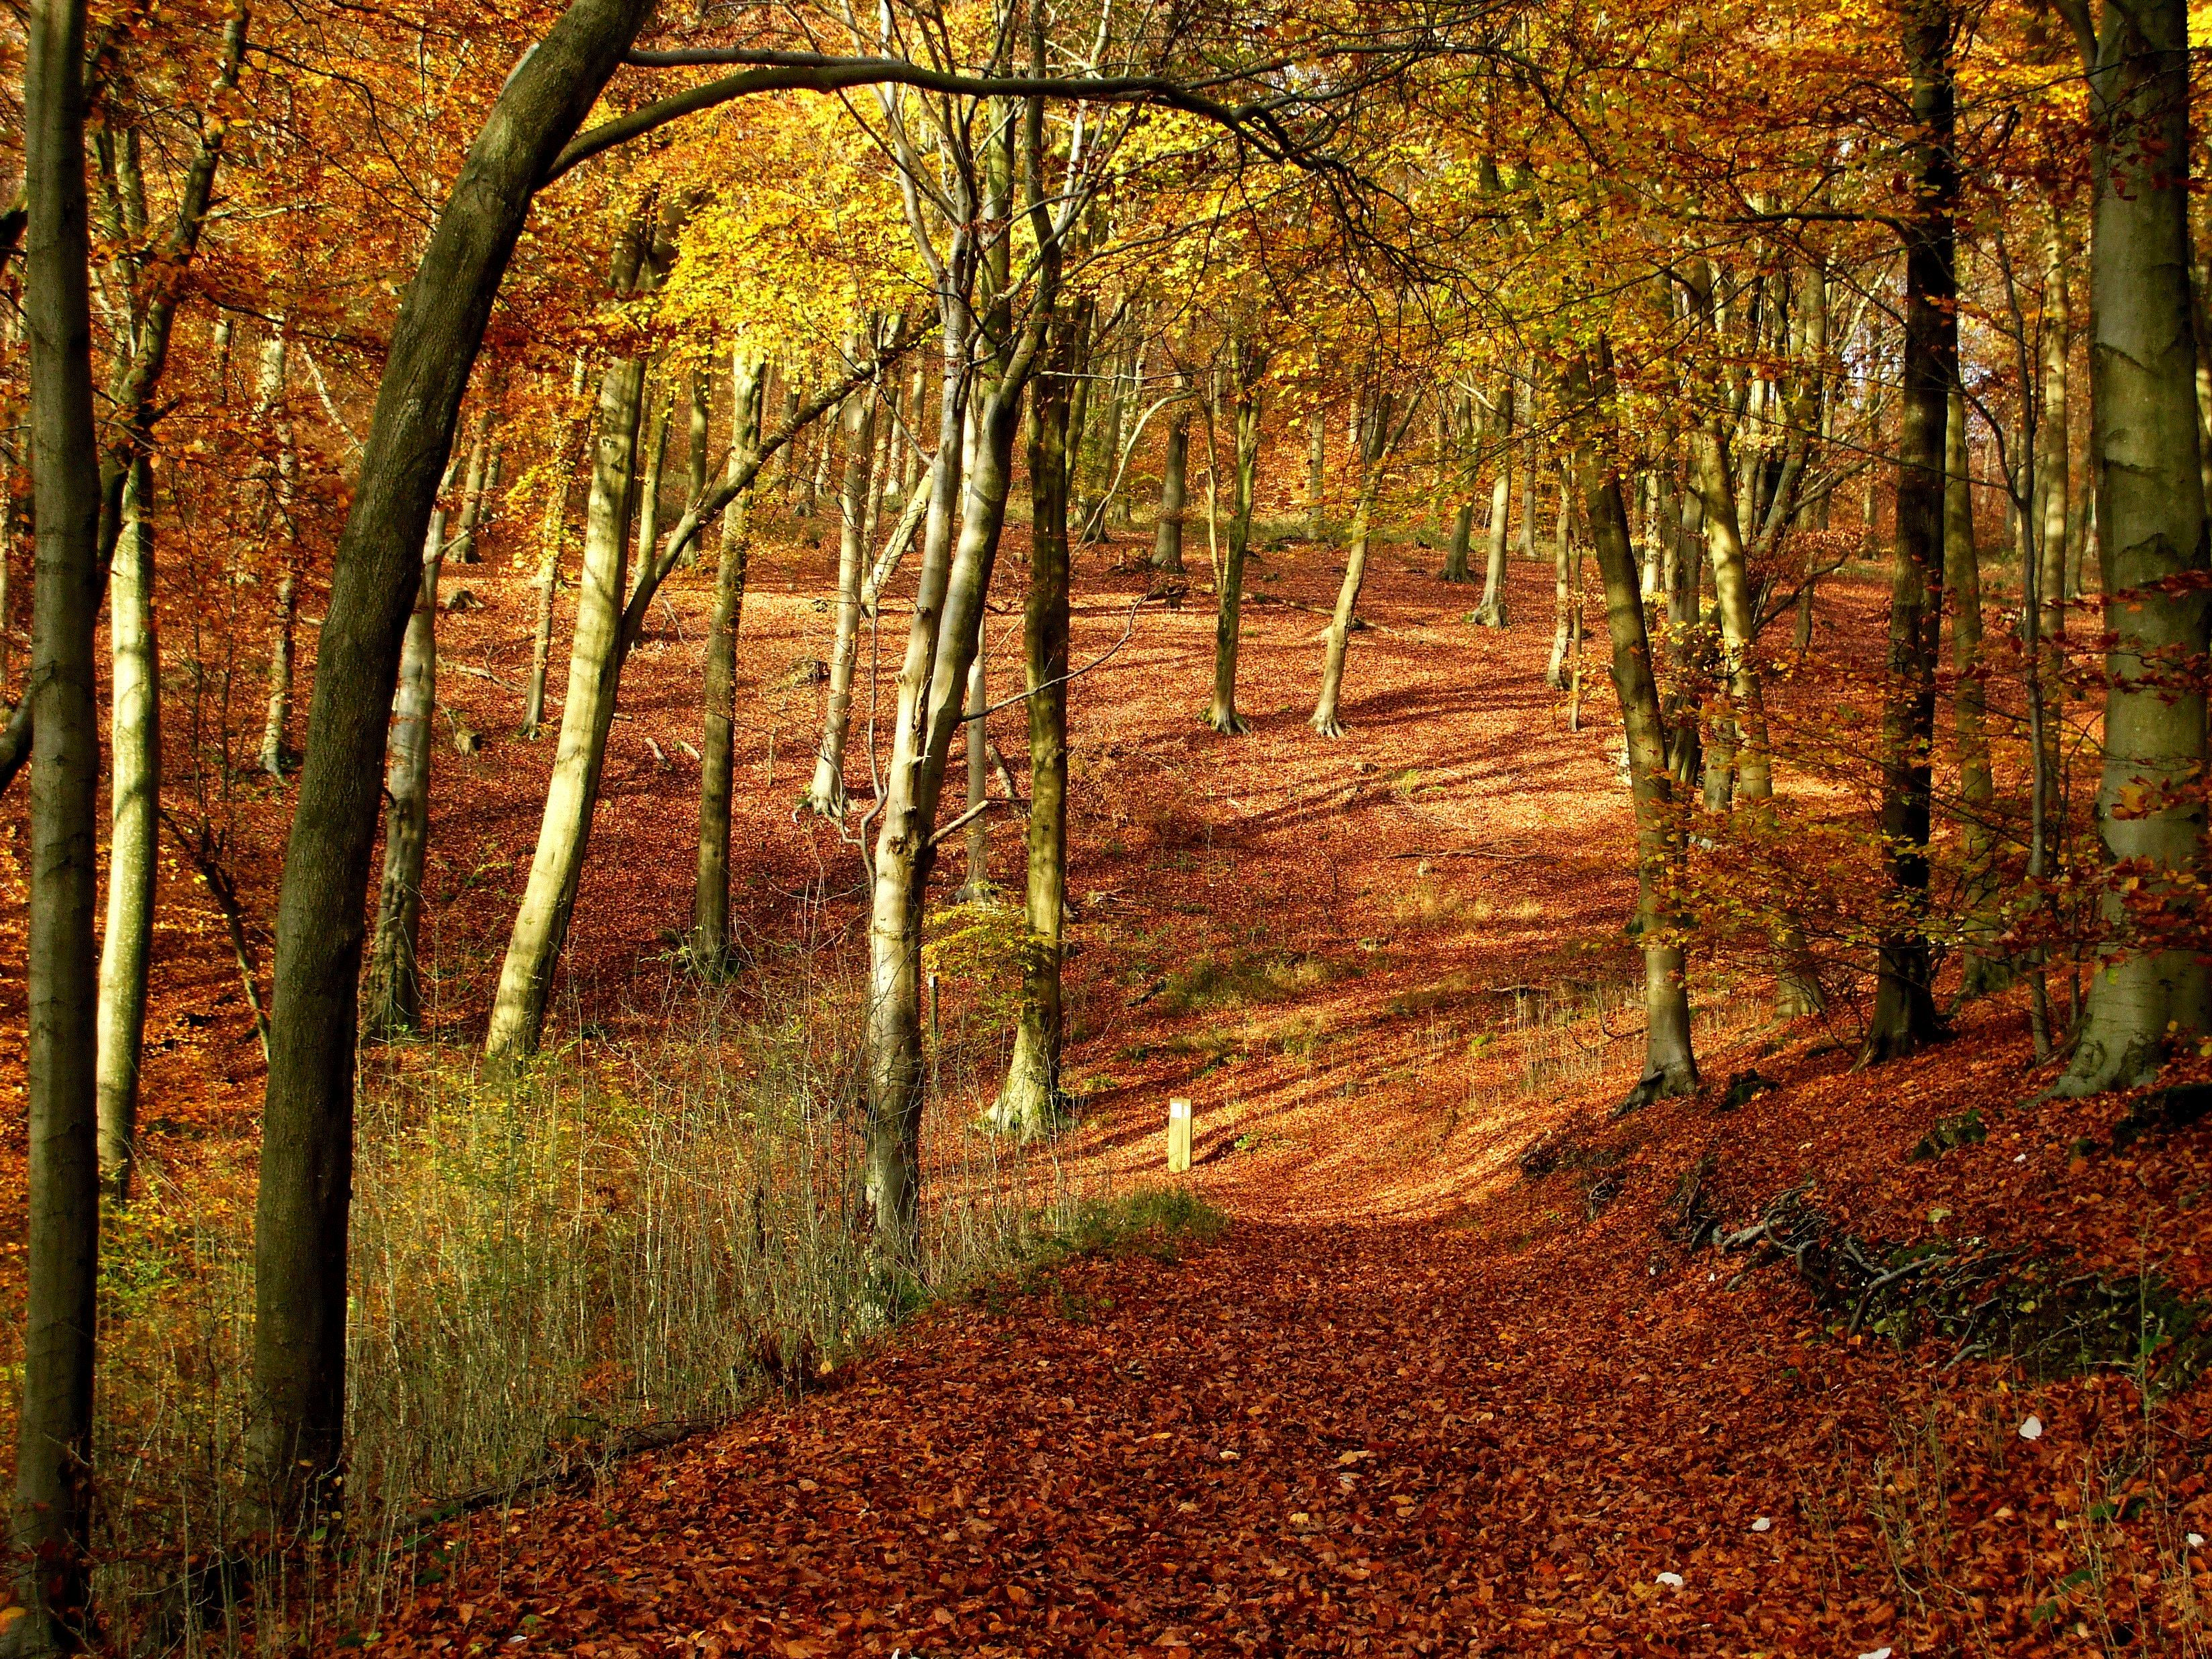 Woodland in autumn with the floor covered in orange leaves